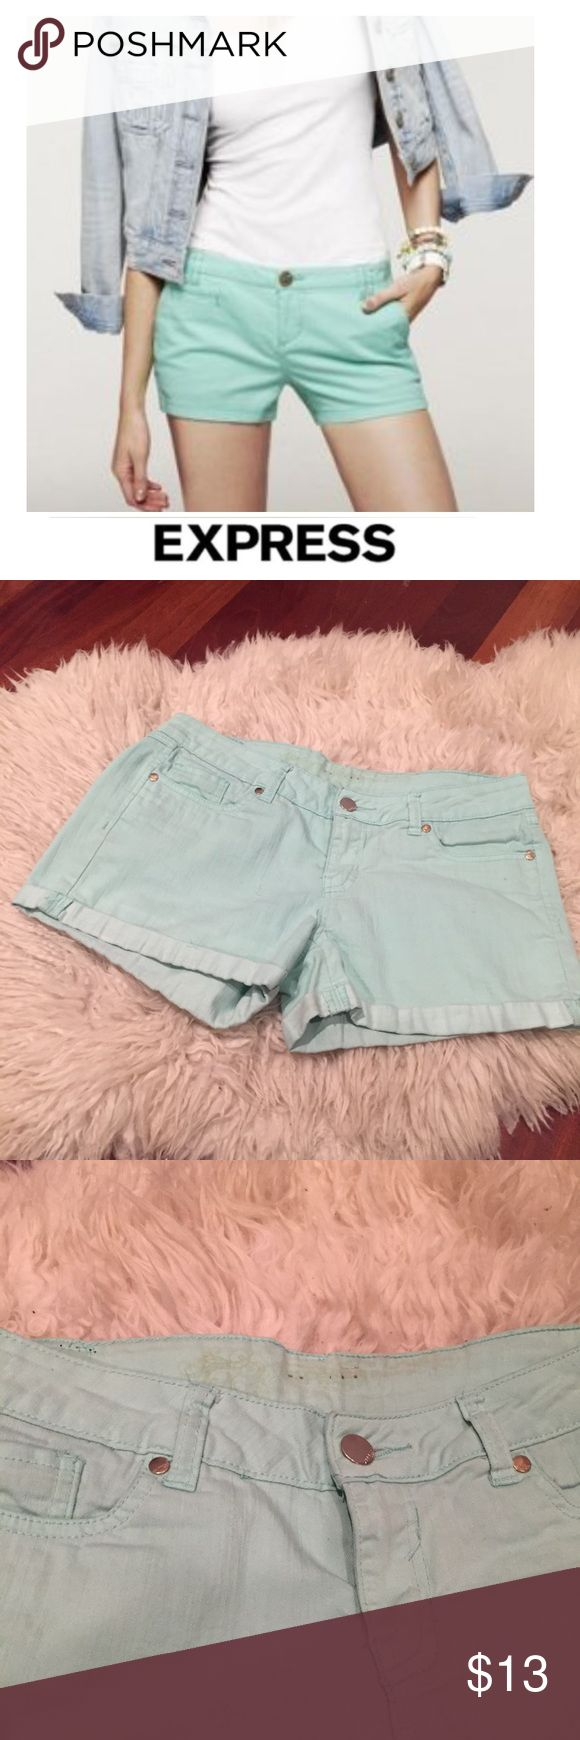 "Express Low Rise Cuffed Mint Green Jean Shorts Express Low Rise Cuffed Mint Green Jean Shorts. 8"" rise. 3.25"" inseam. You can see some light discoloration at the bottom of the cuff pants but otherwise really good condition! Feel free to make an offer or bundle & save! Express Shorts Jean Shorts"